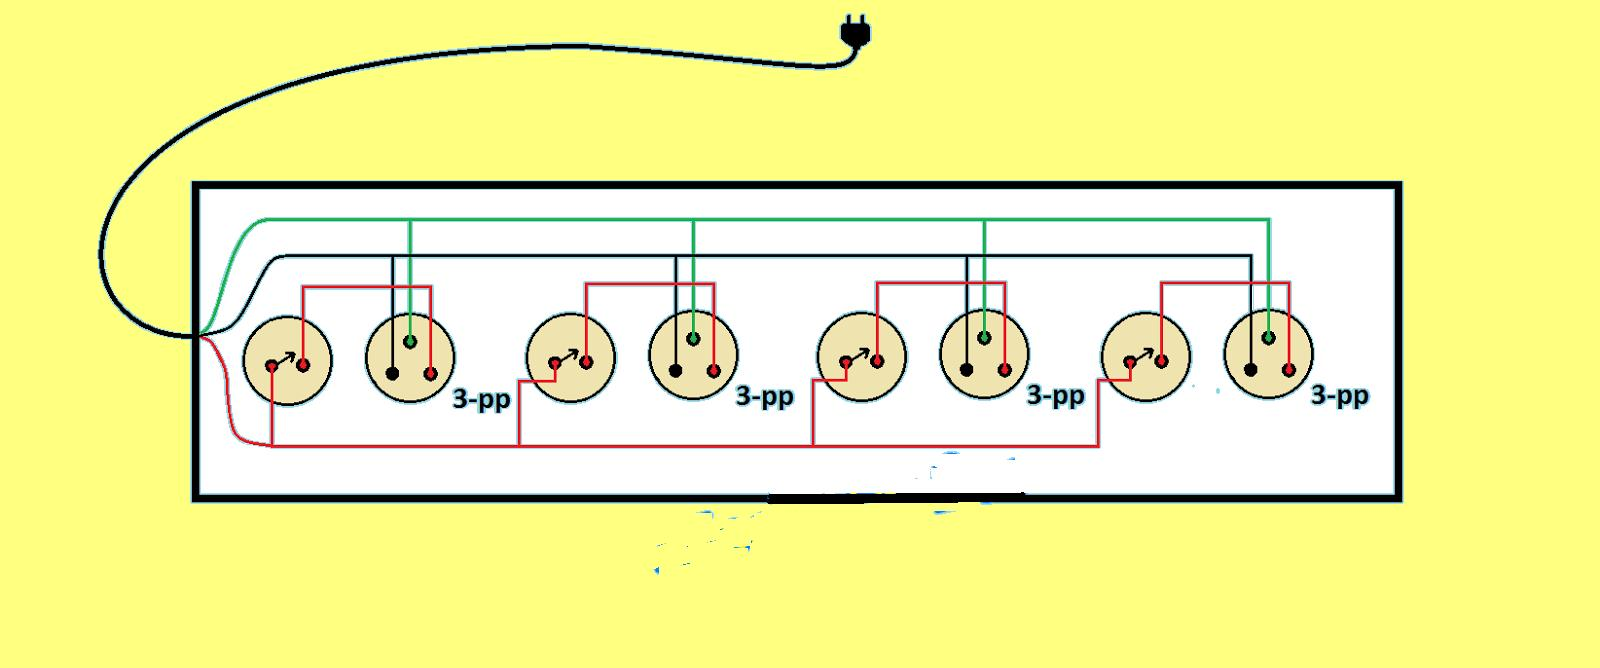 91 91 jpg extension board wiring diagram at mifinder.co